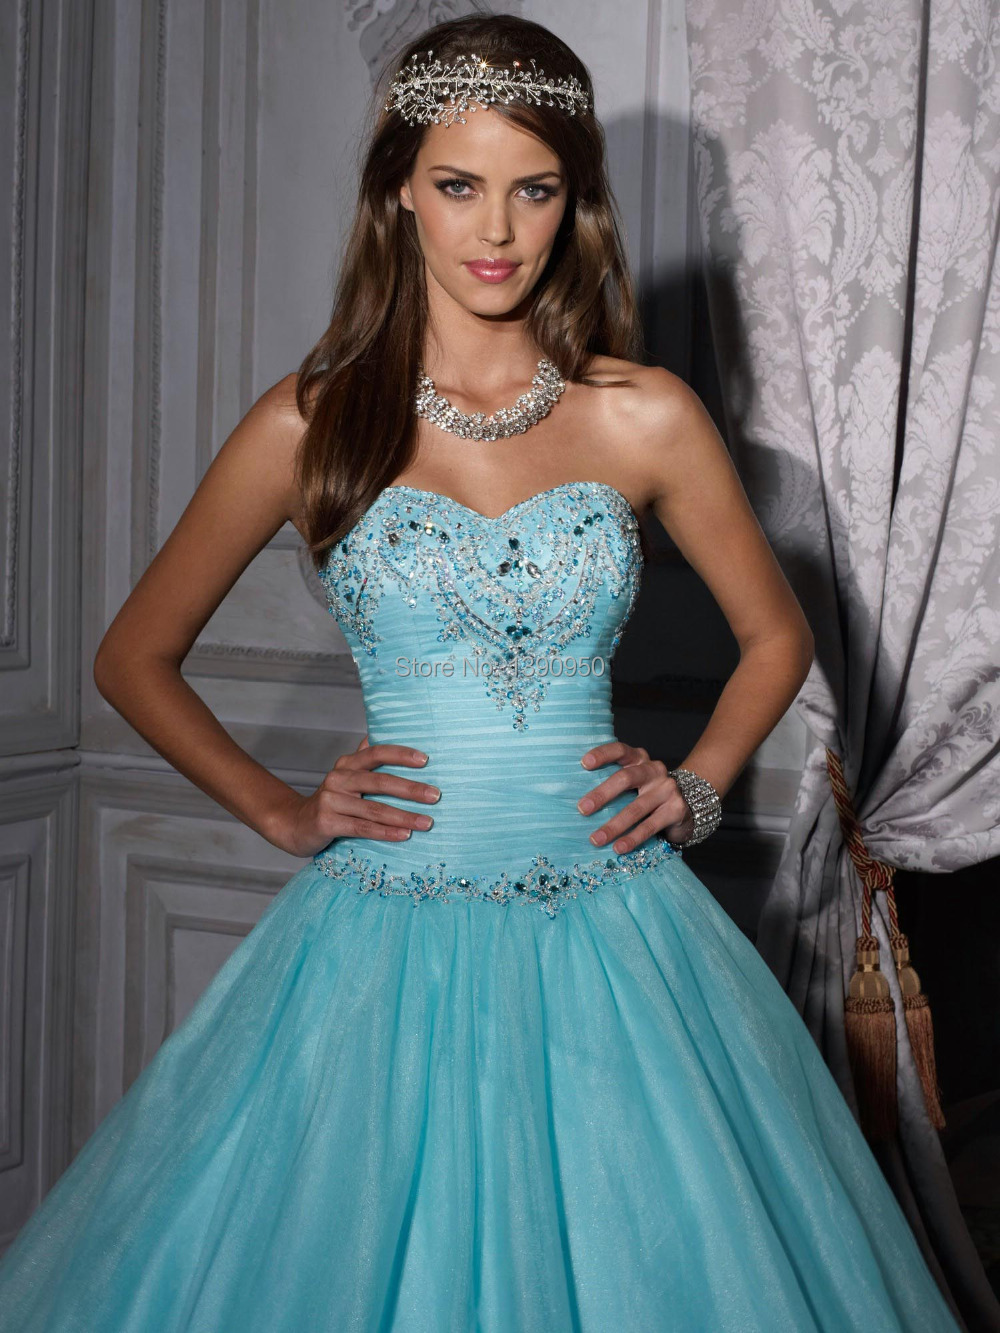 Charming How To Dress Up For A Masquerade Party Images - Wedding ...